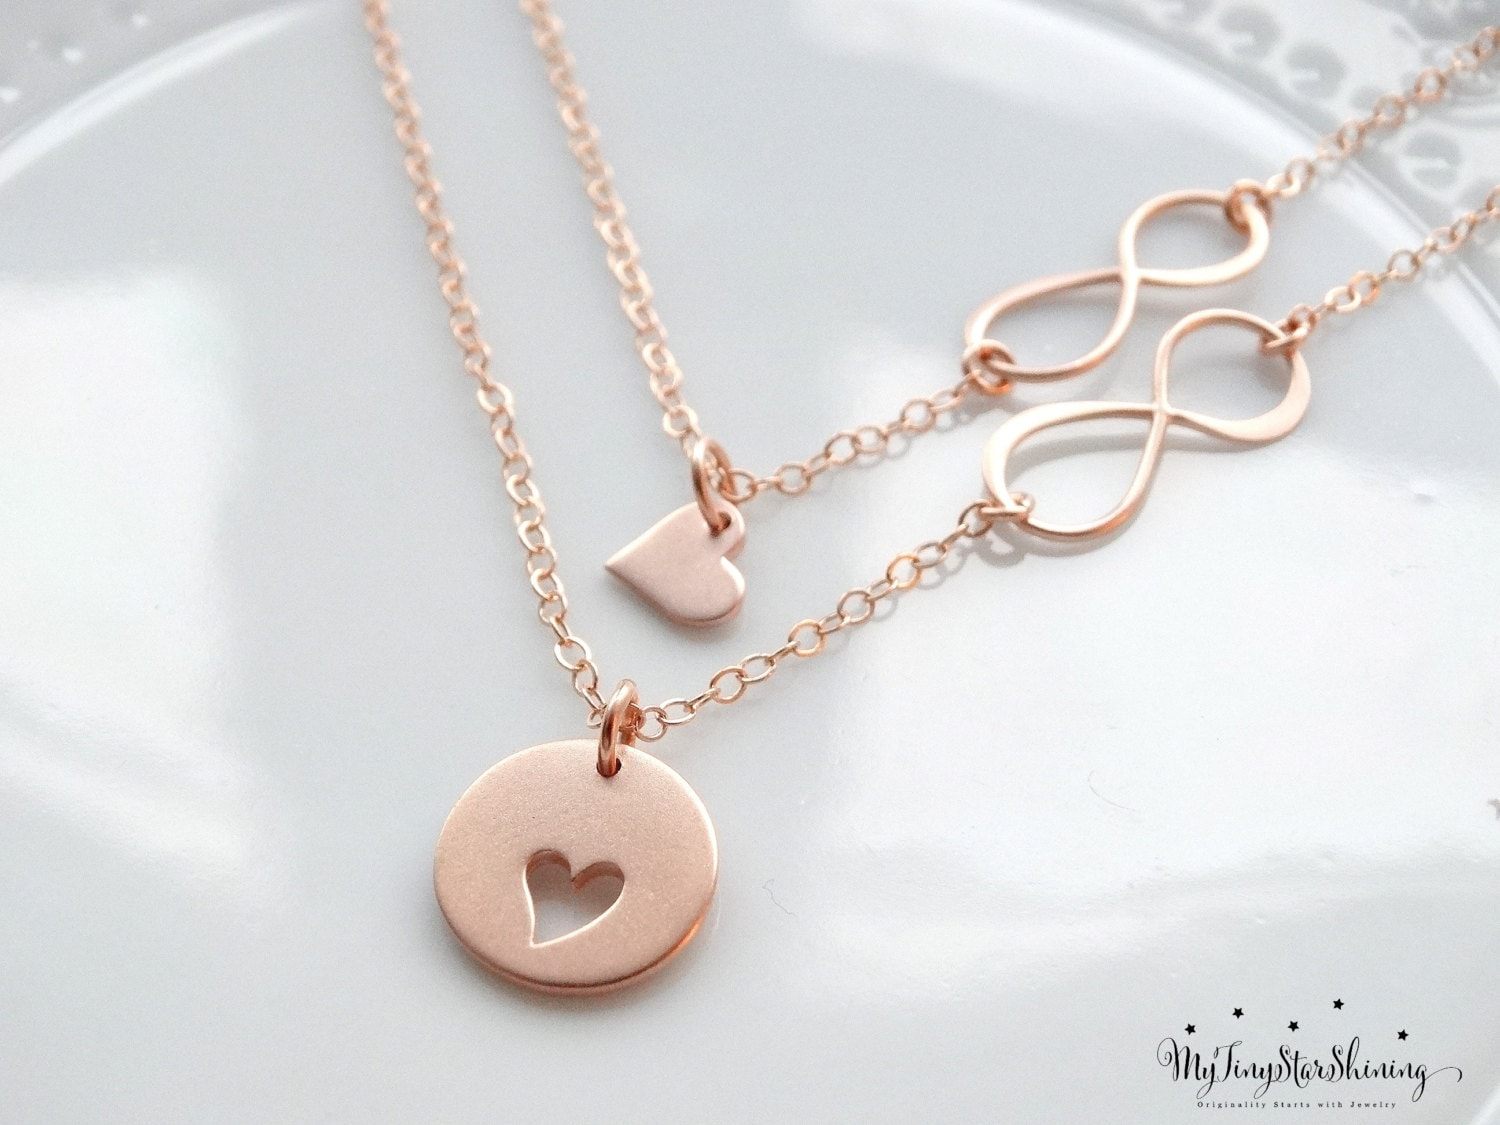 Mother daughter necklace set rose gold necklace infinity heart mother daughter necklace set rose gold necklace infinity heart necklace mother daughter jewelry mother of the bride gift set of 2 aloadofball Images